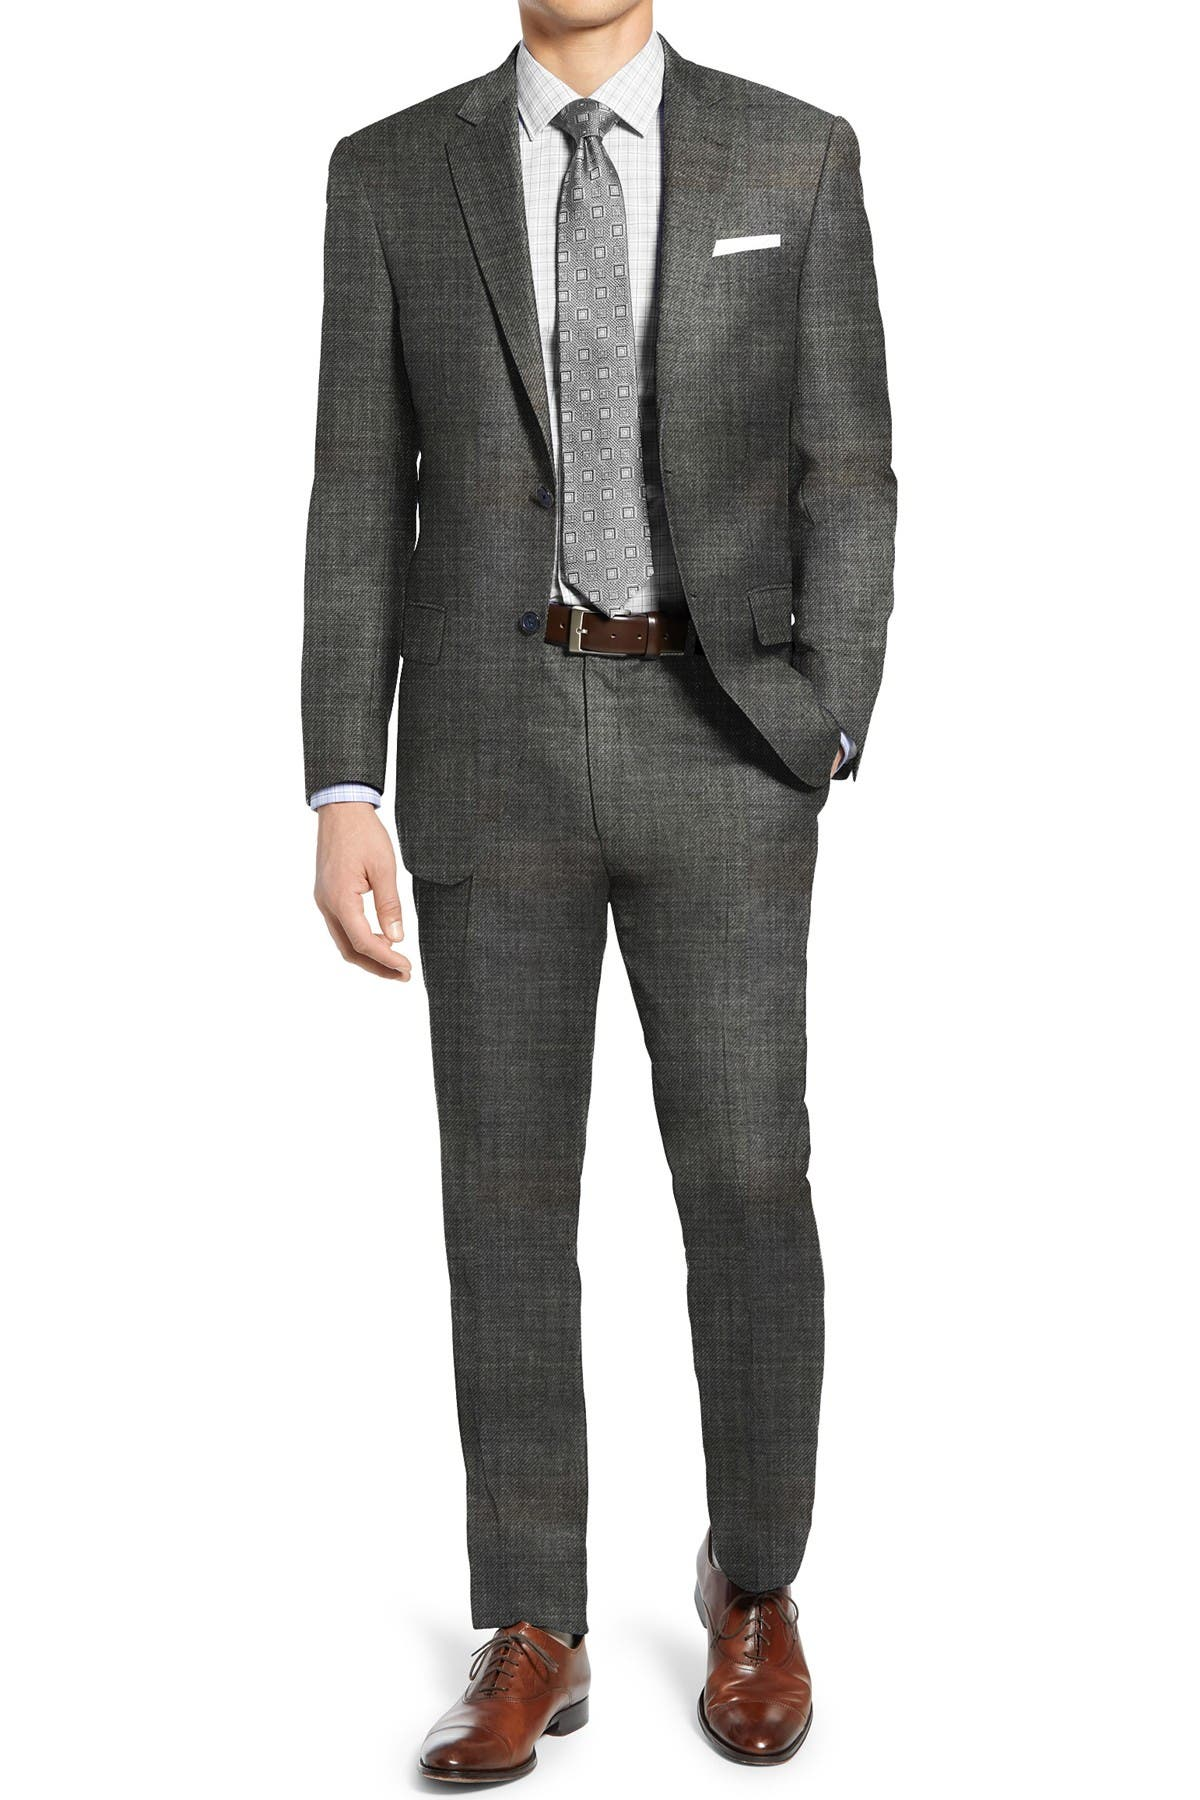 Image of Hart Schaffner Marx Grey Sharkskin Two Button Notch Lapel New York Fit Suit